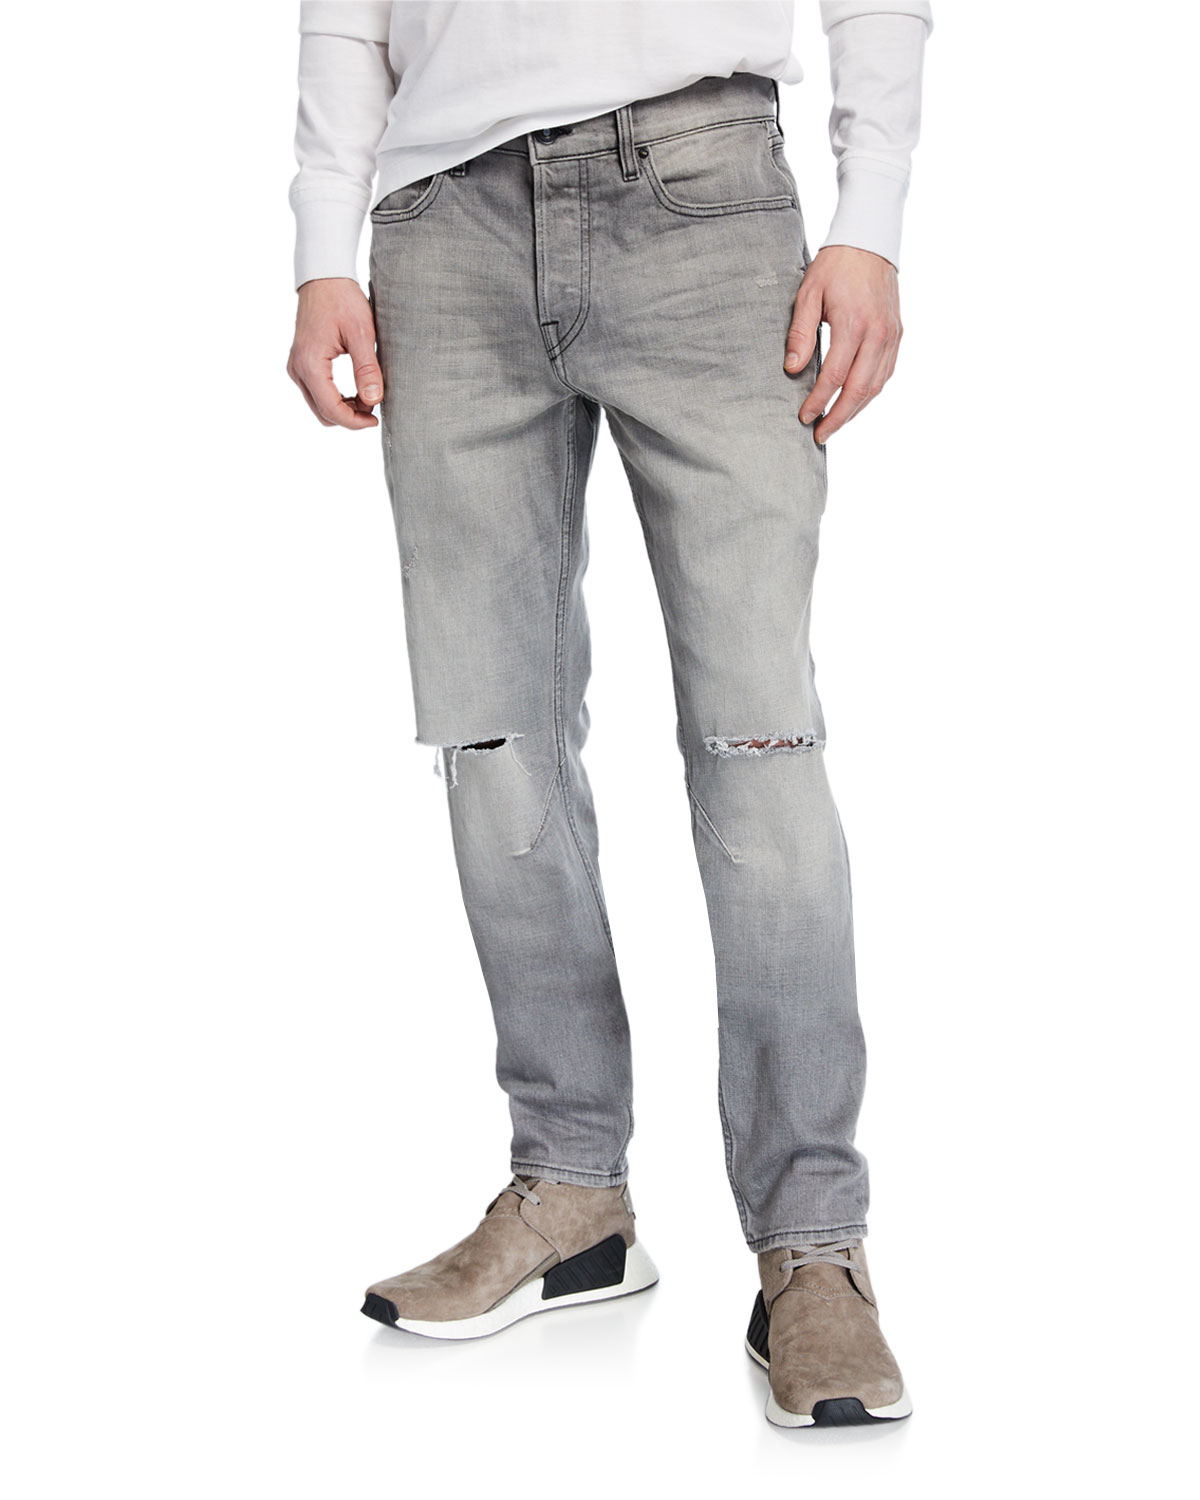 temperament shoes attractive style best sneakers Men's Sartor Rip-Knee Skinny Jeans in Gray